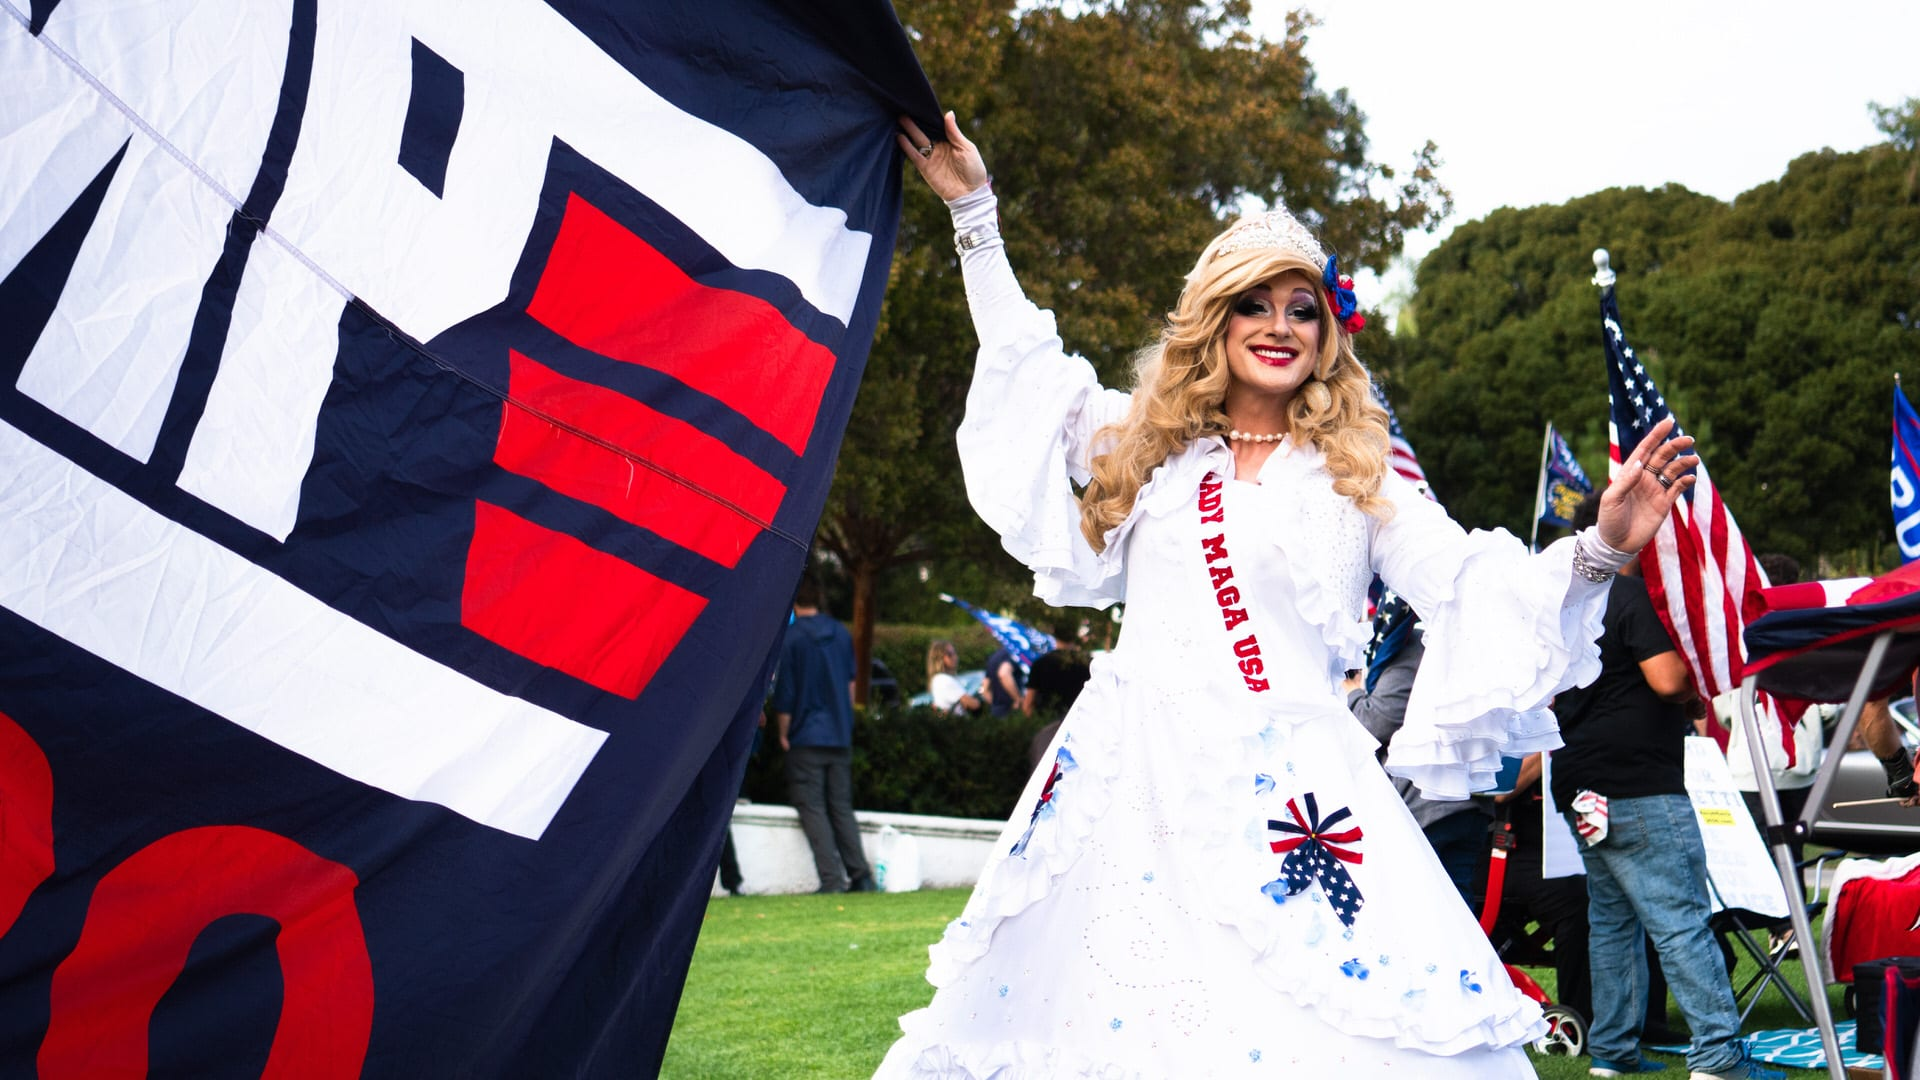 Drag queen Lady Maga USA at a Trump rally in full costume.